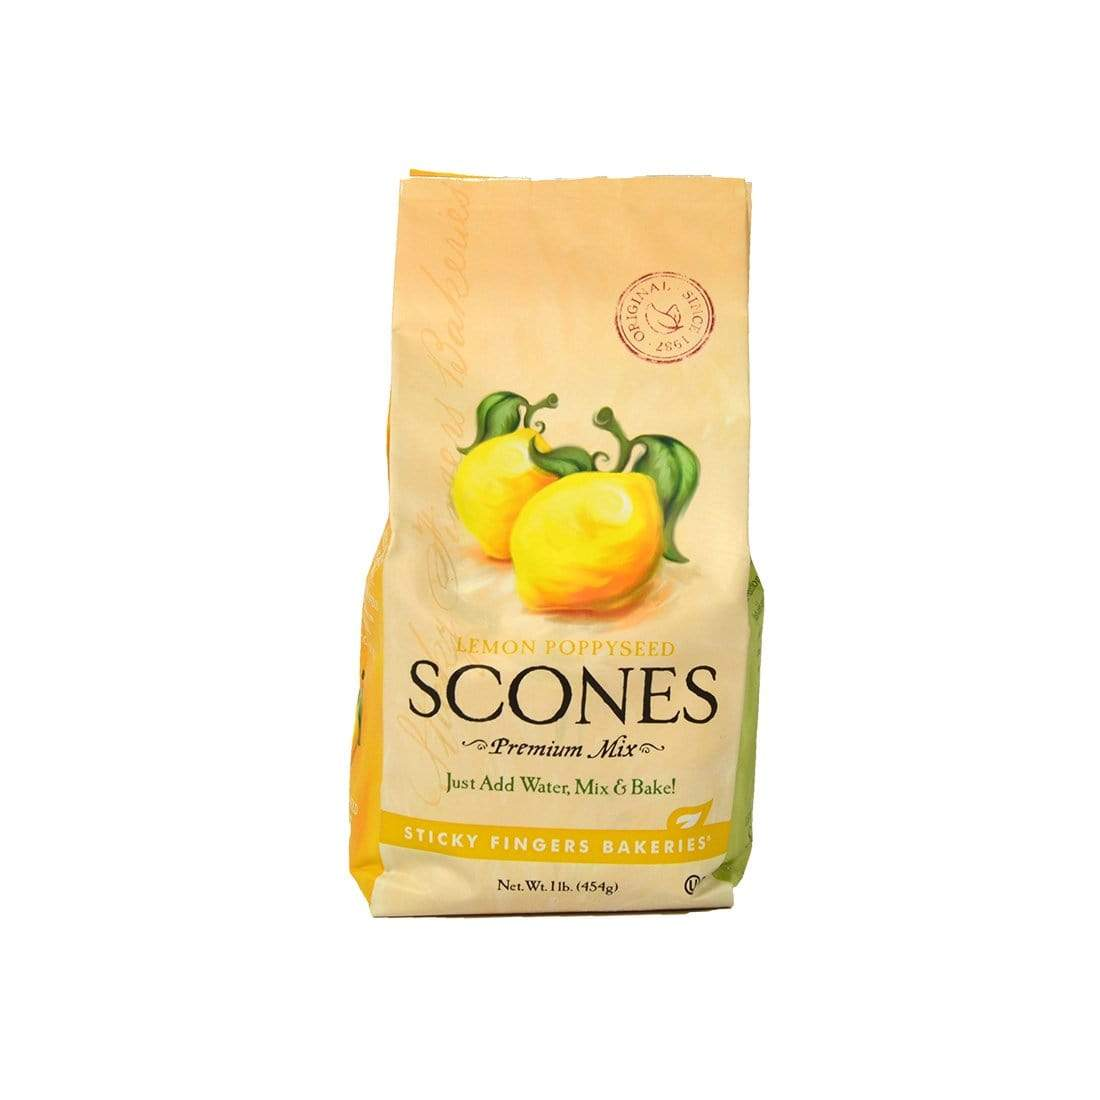 Sticky Fingers Bakeries Sticky Fingers Lemon Poppyseed Scone Mix 15 oz